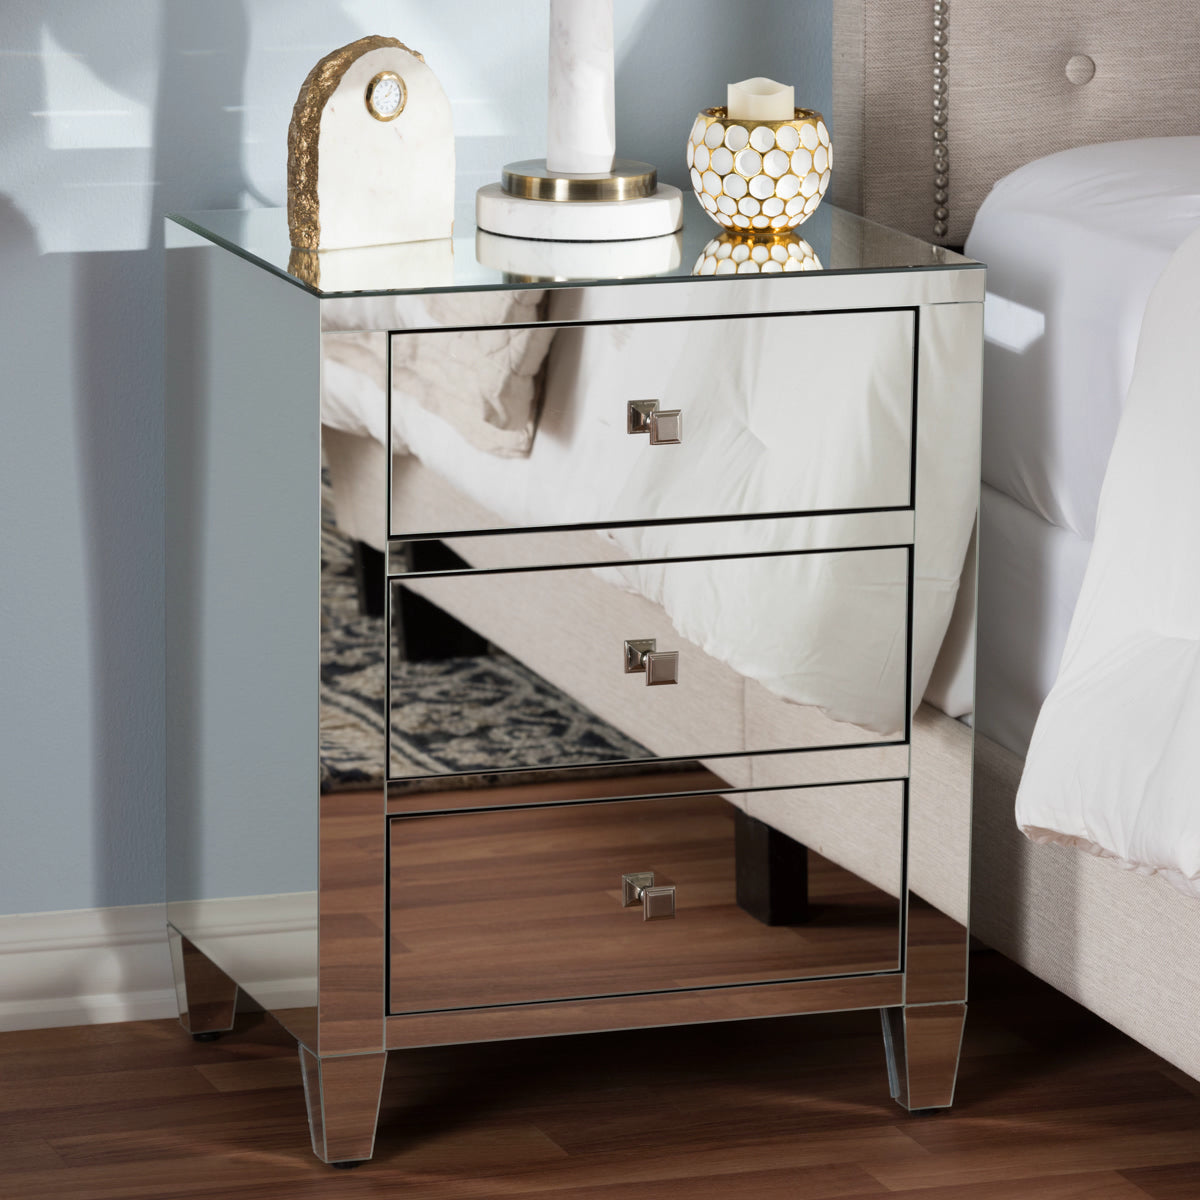 Baxton Studio Rosalind Hollywood Regency Glamour Style Mirrored 3-Drawer Nightstand (Set of 2) Baxton Studio-nightstands-Minimal And Modern - 1